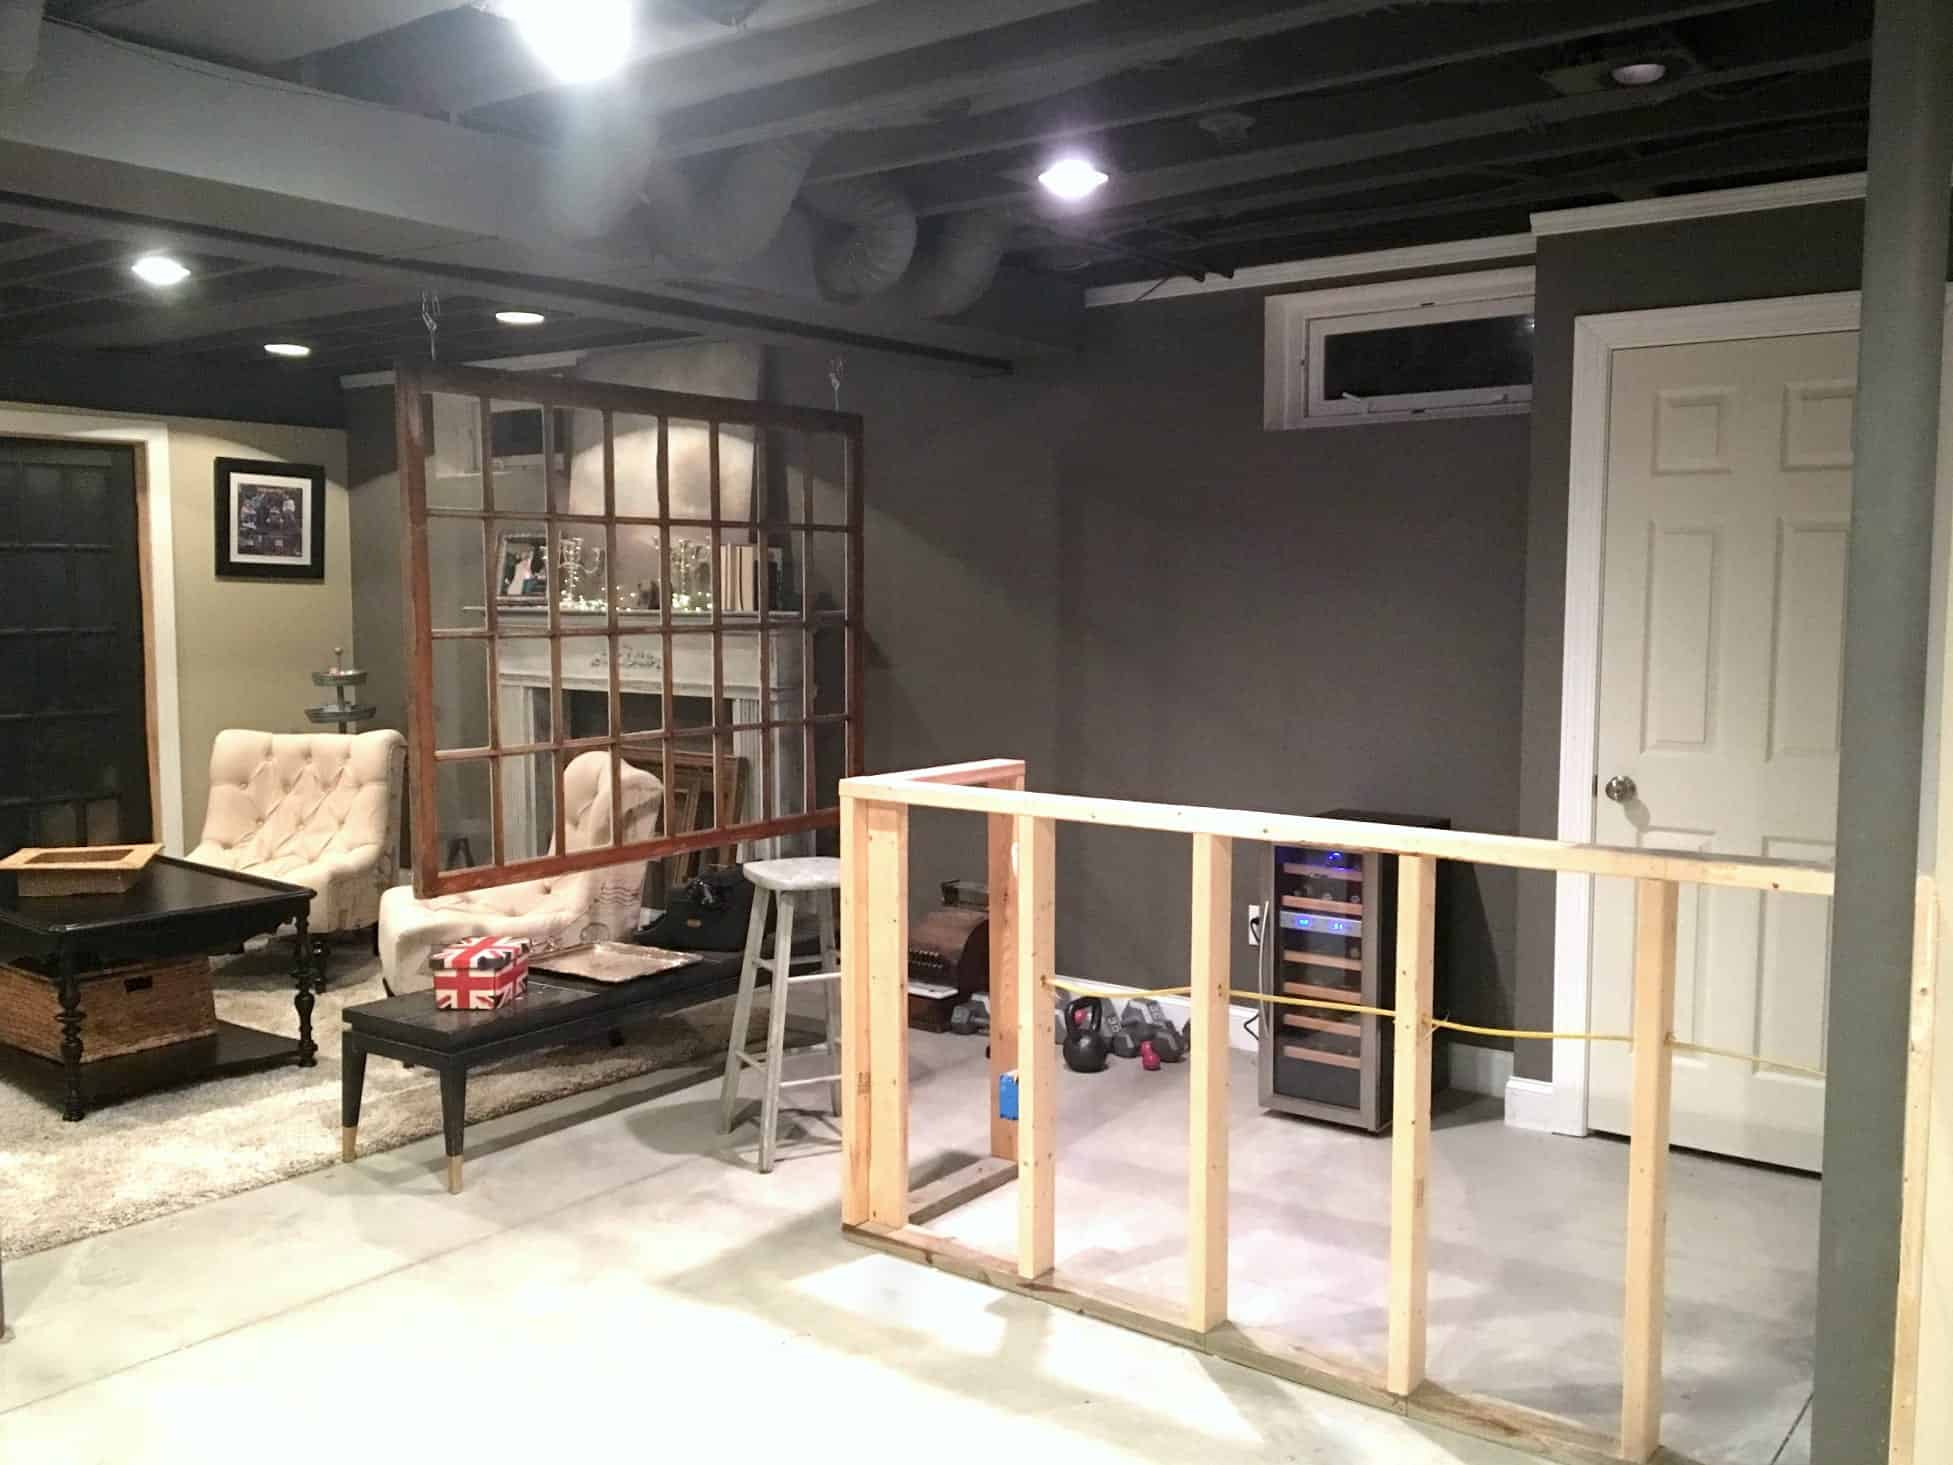 Diy Decor Industrial Basement Remodel